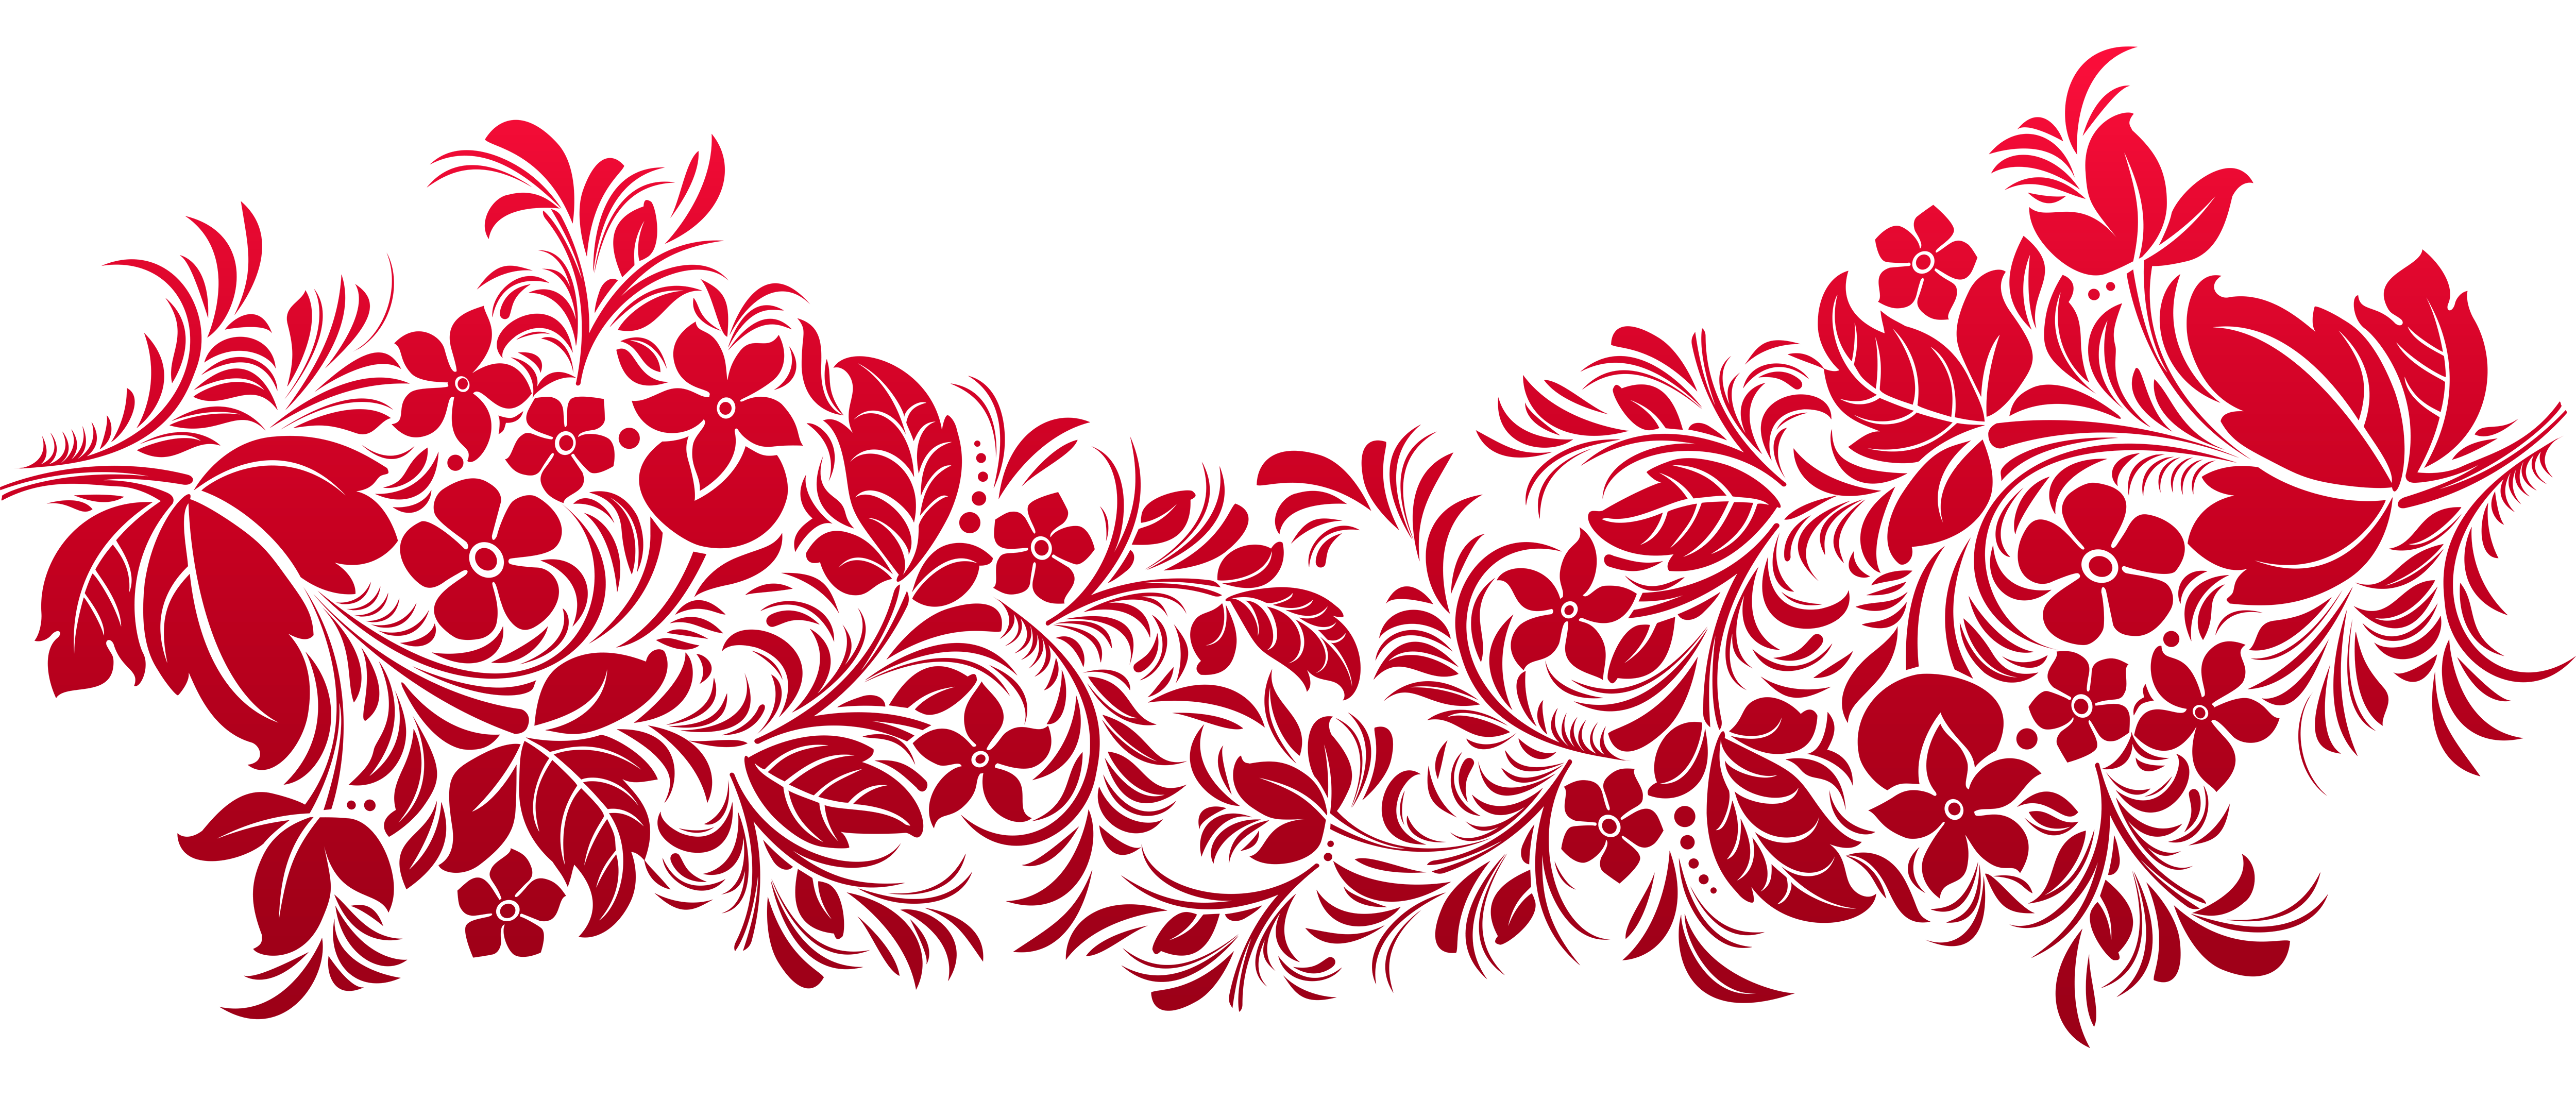 Red Transparent Decoration PNG Clipart Gallery